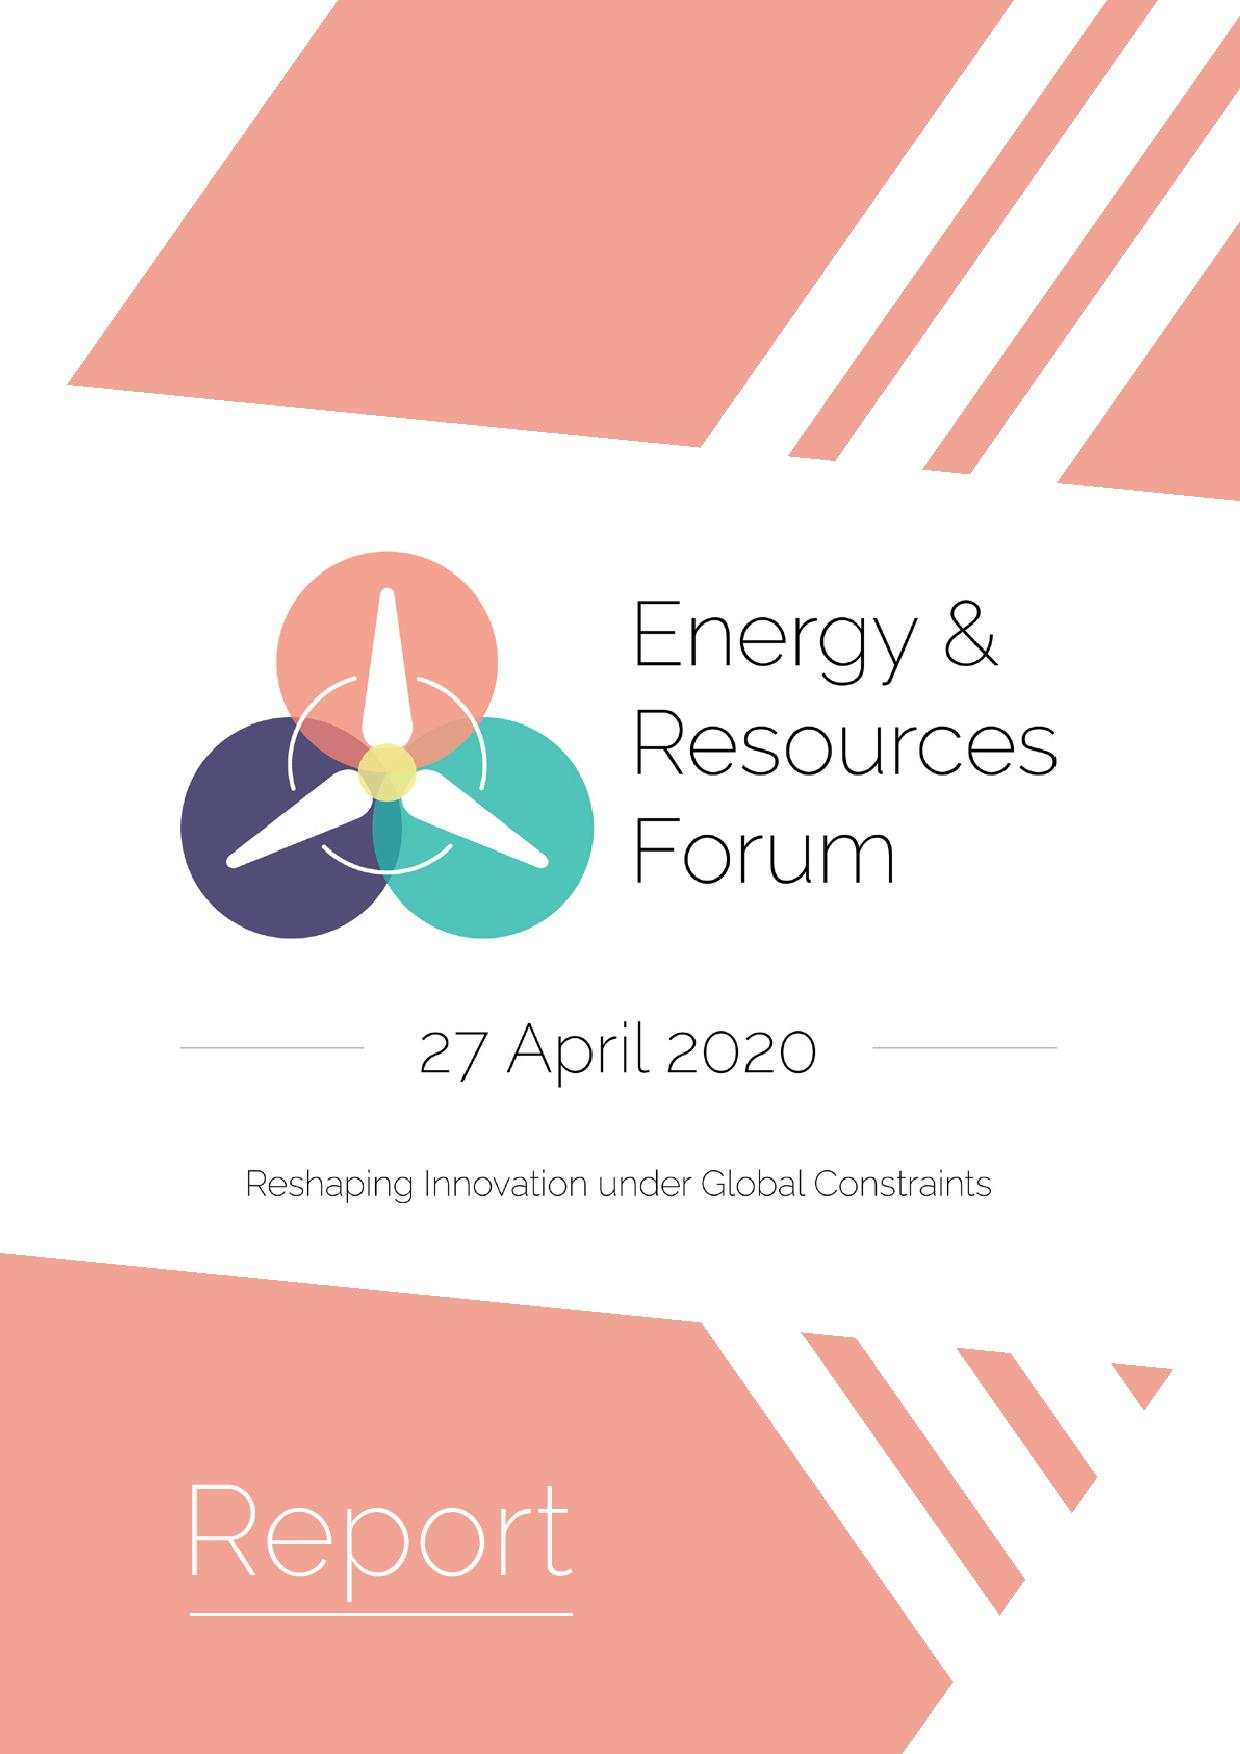 Energy & Resources Forum 2020 - Full Report